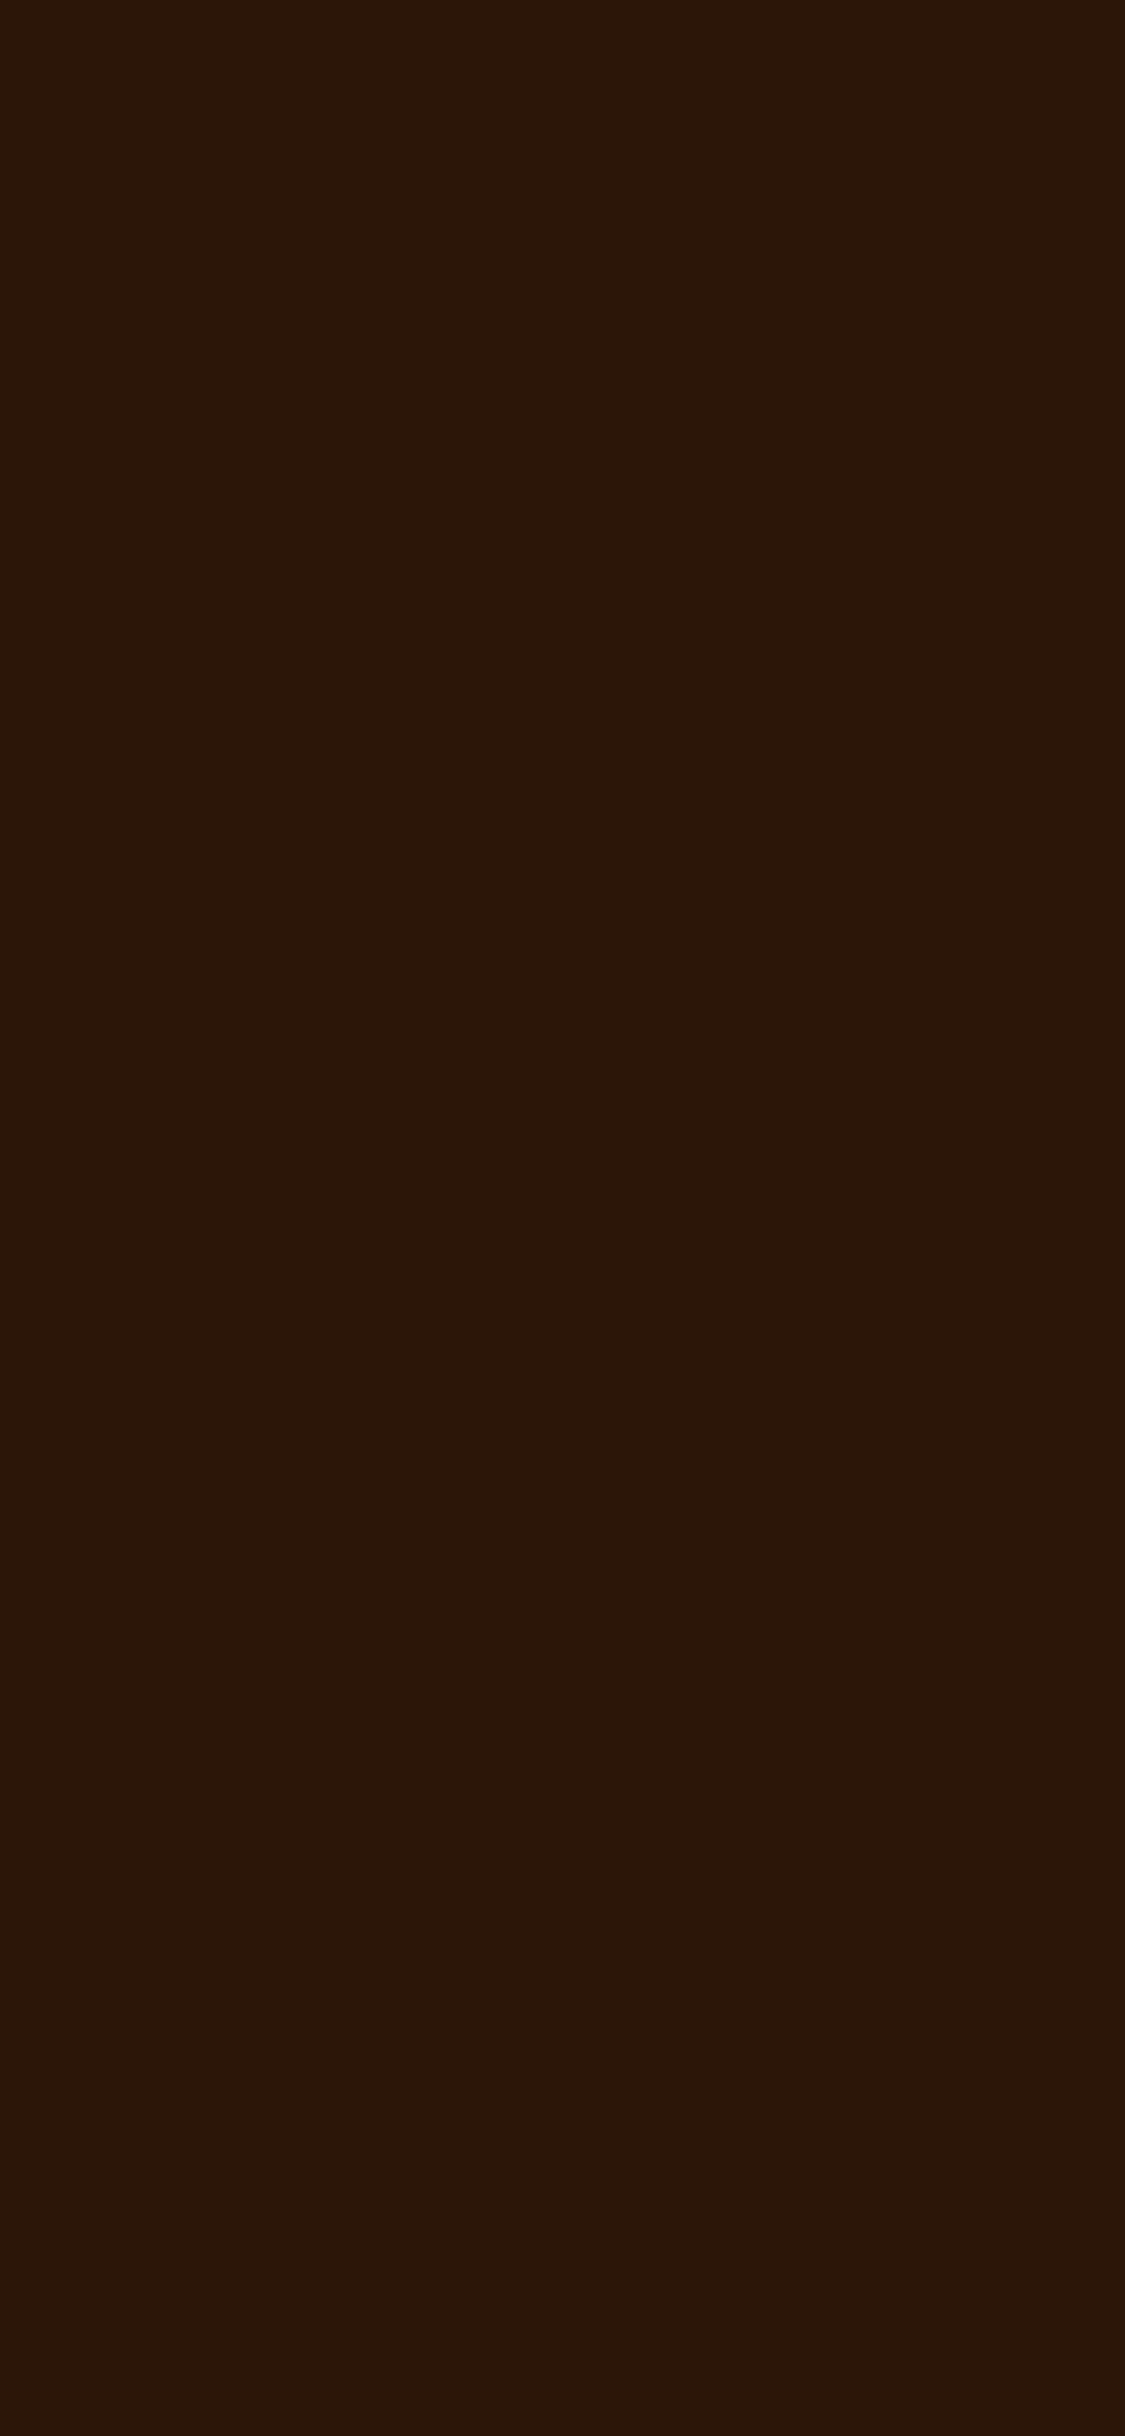 1125x2436 Zinnwaldite Brown Solid Color Background